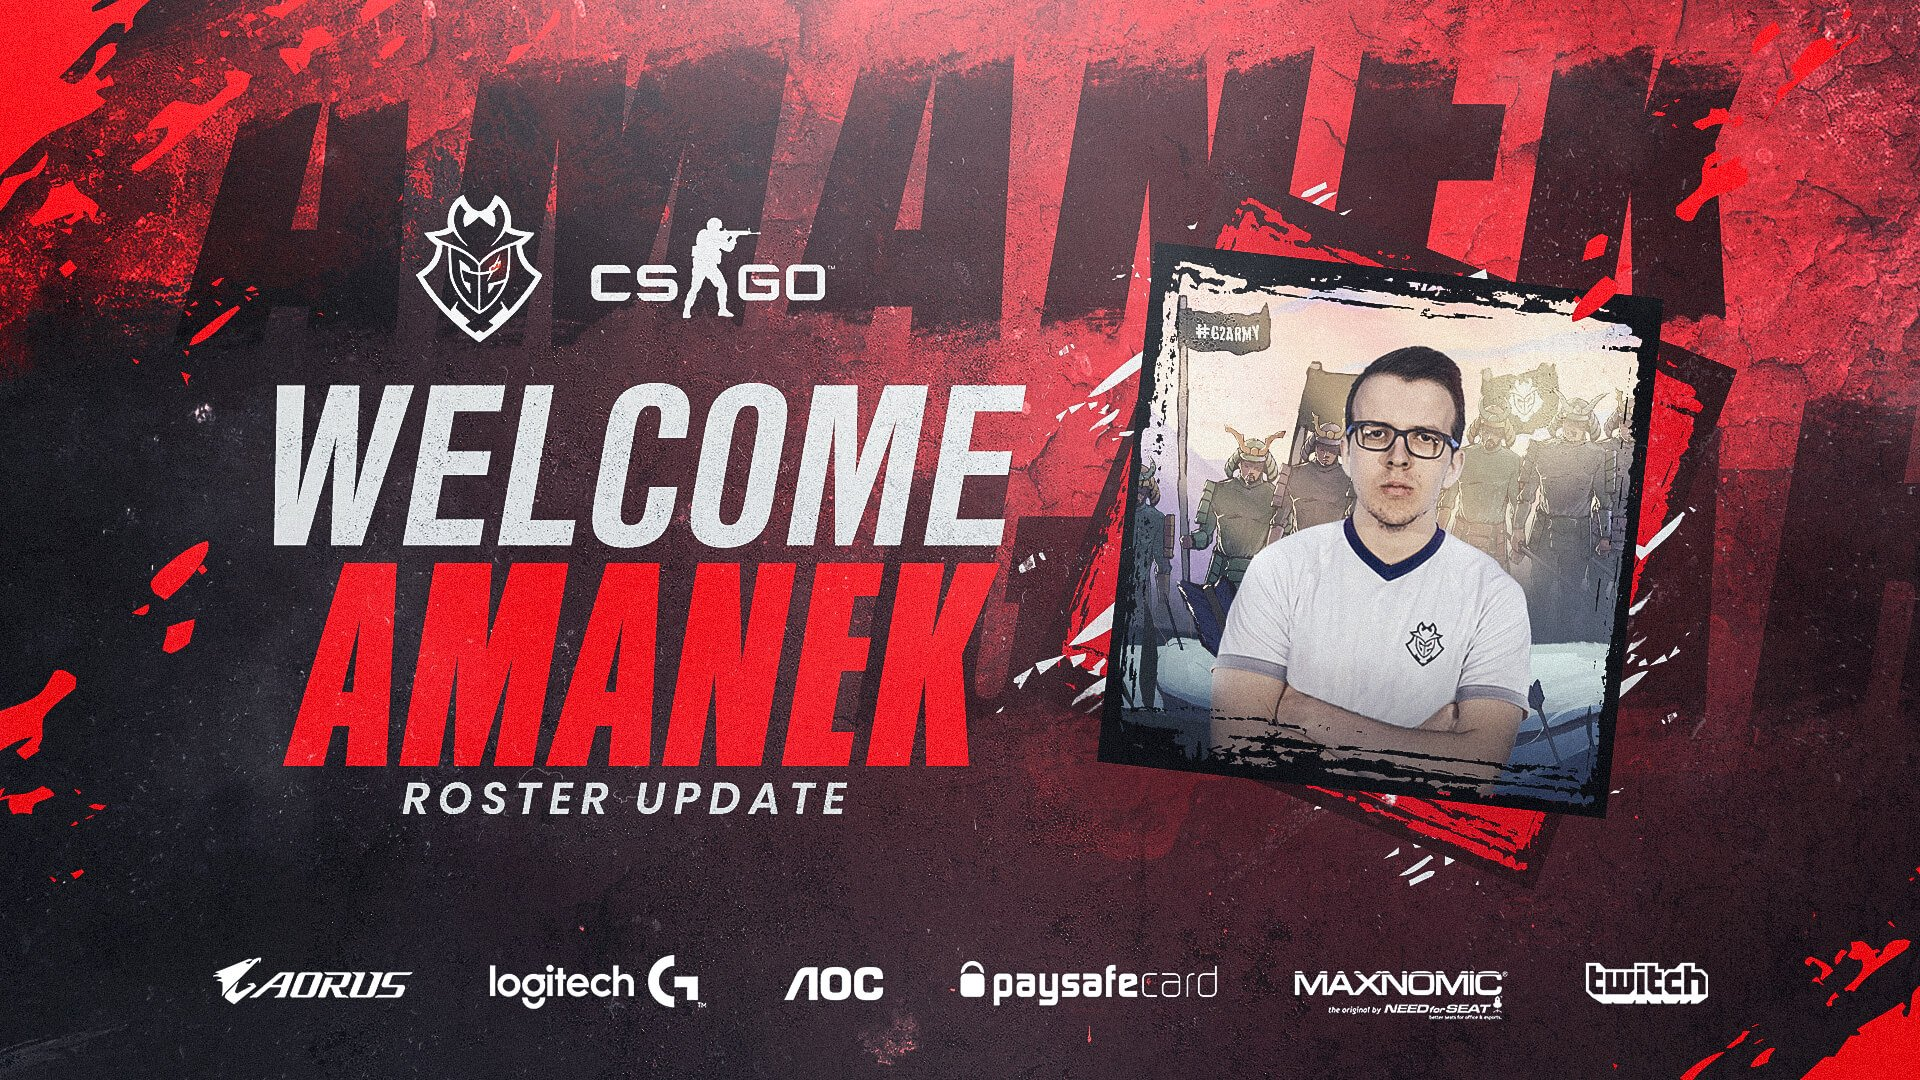 AmaNEk to Join G2 Roster, Bodyy Has To Go?